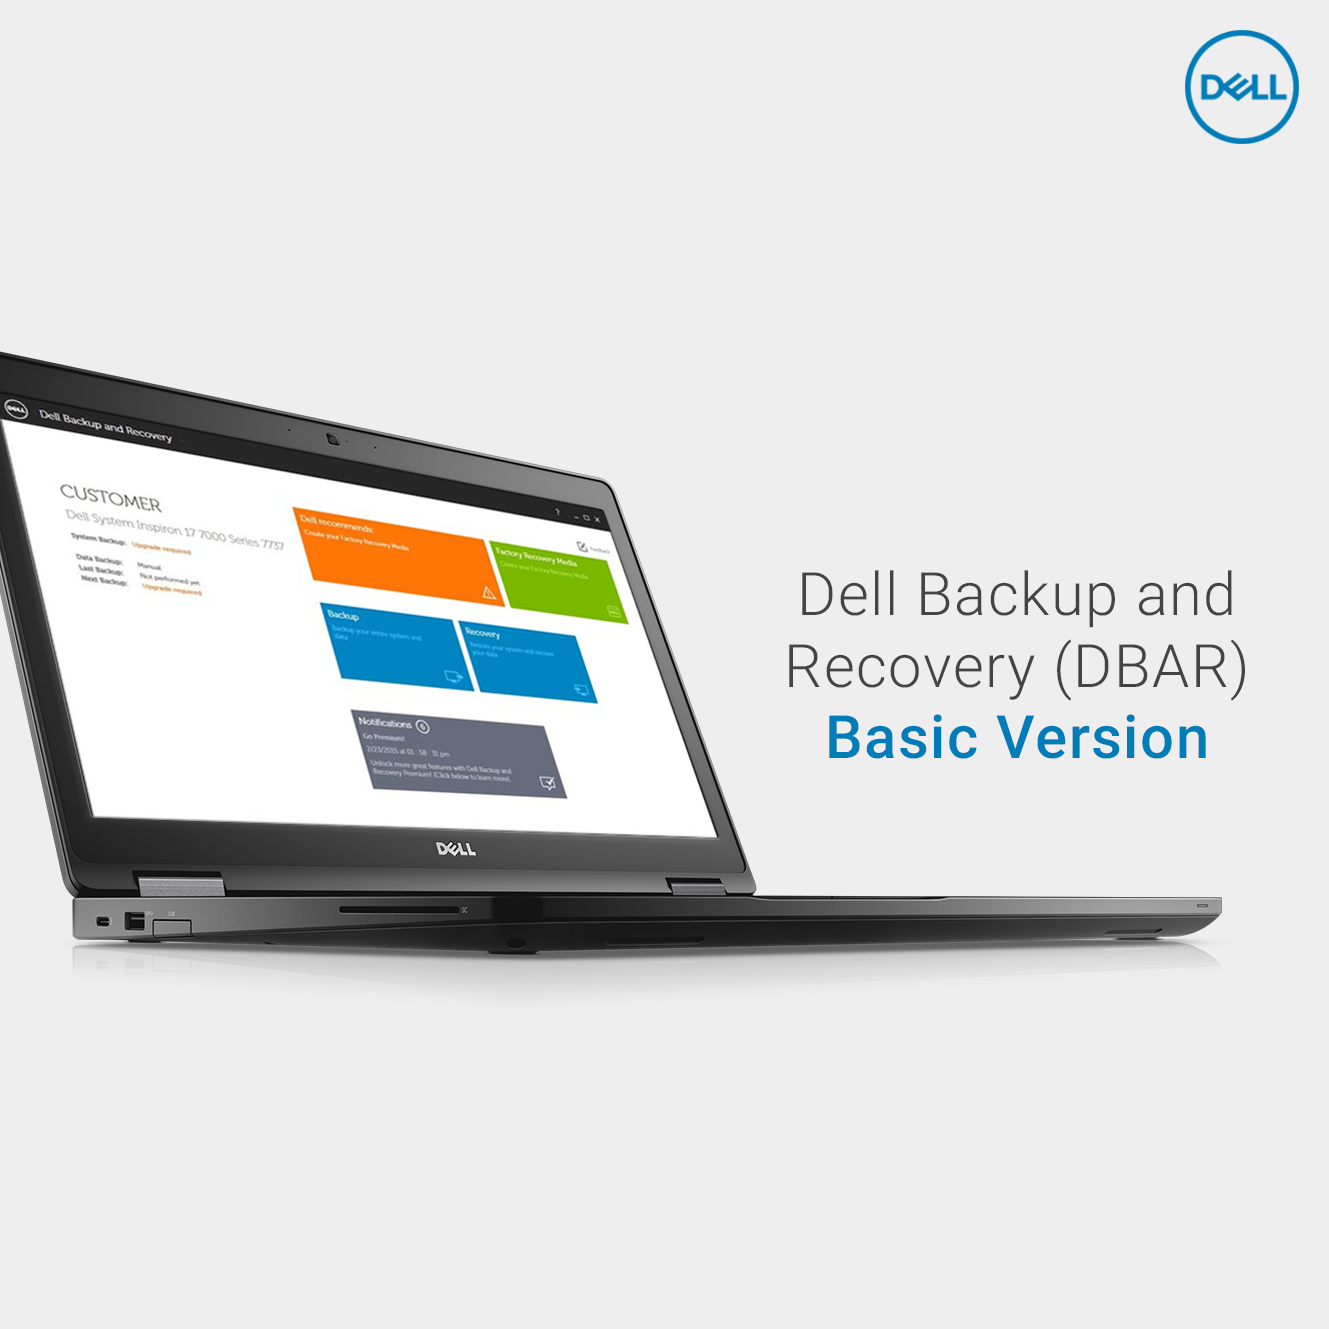 Dell Backup And Recovery Dbar Basic Version Databackup